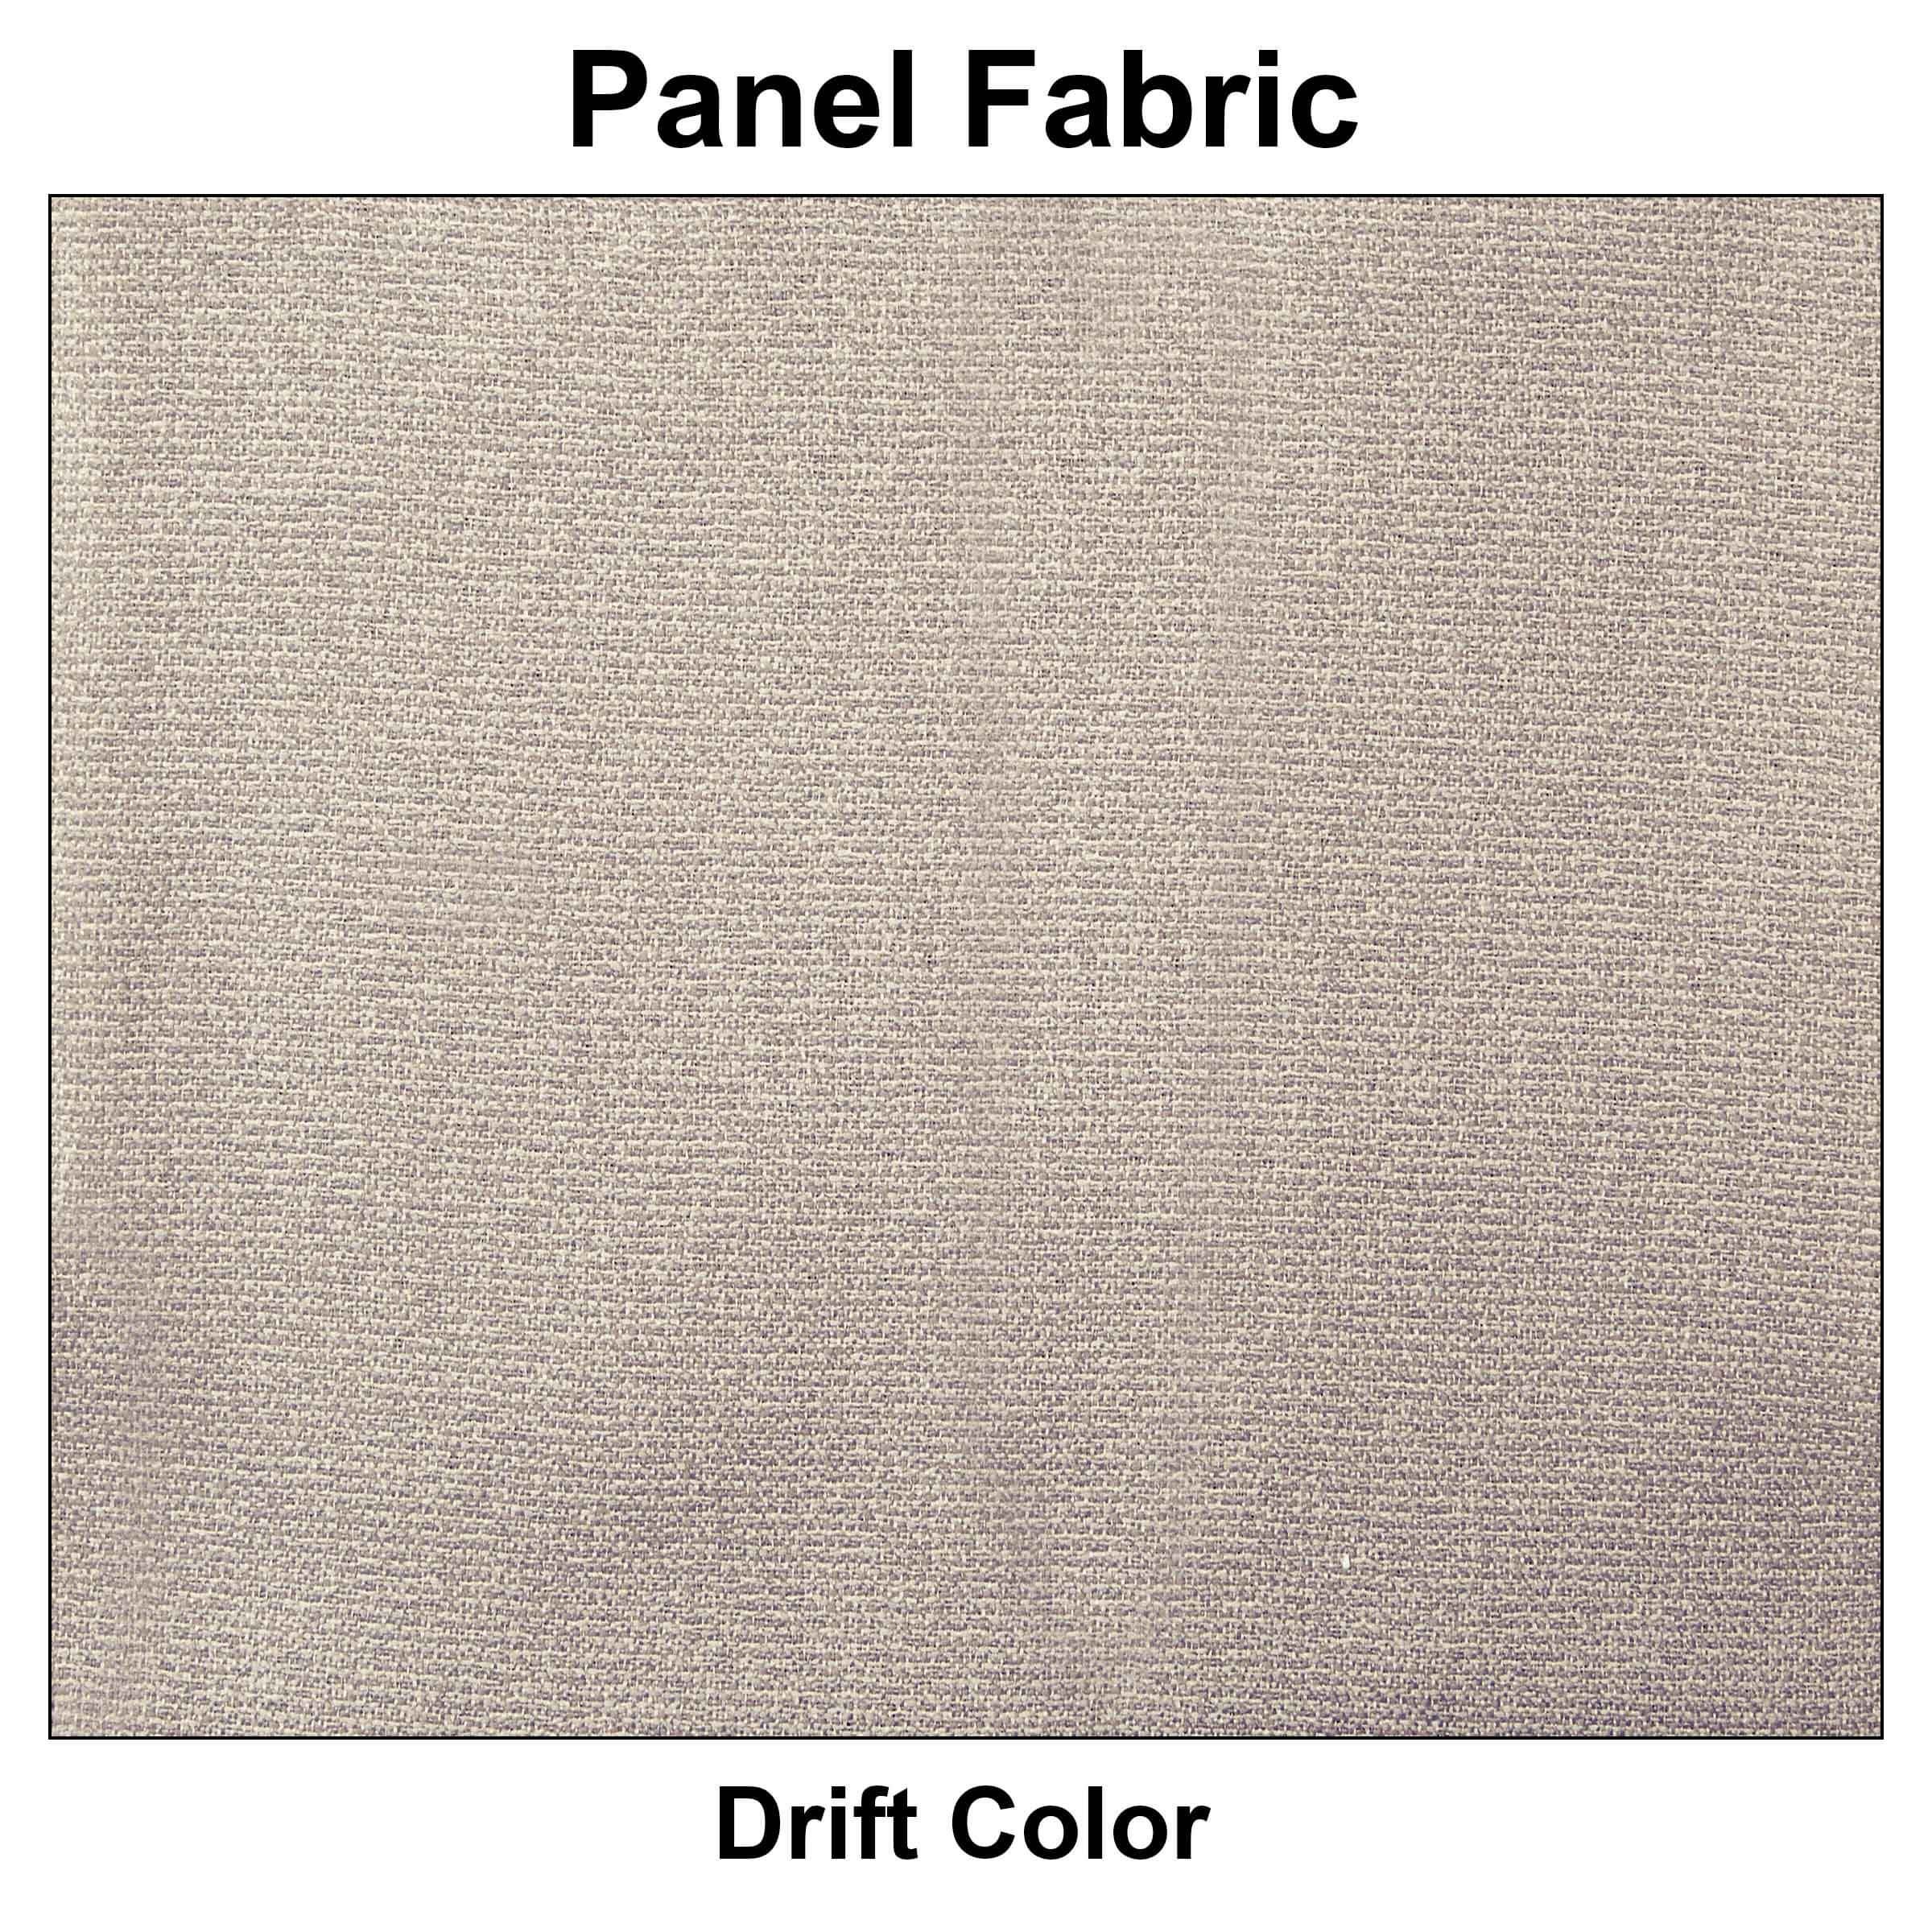 Hoteling workstations single fabric color